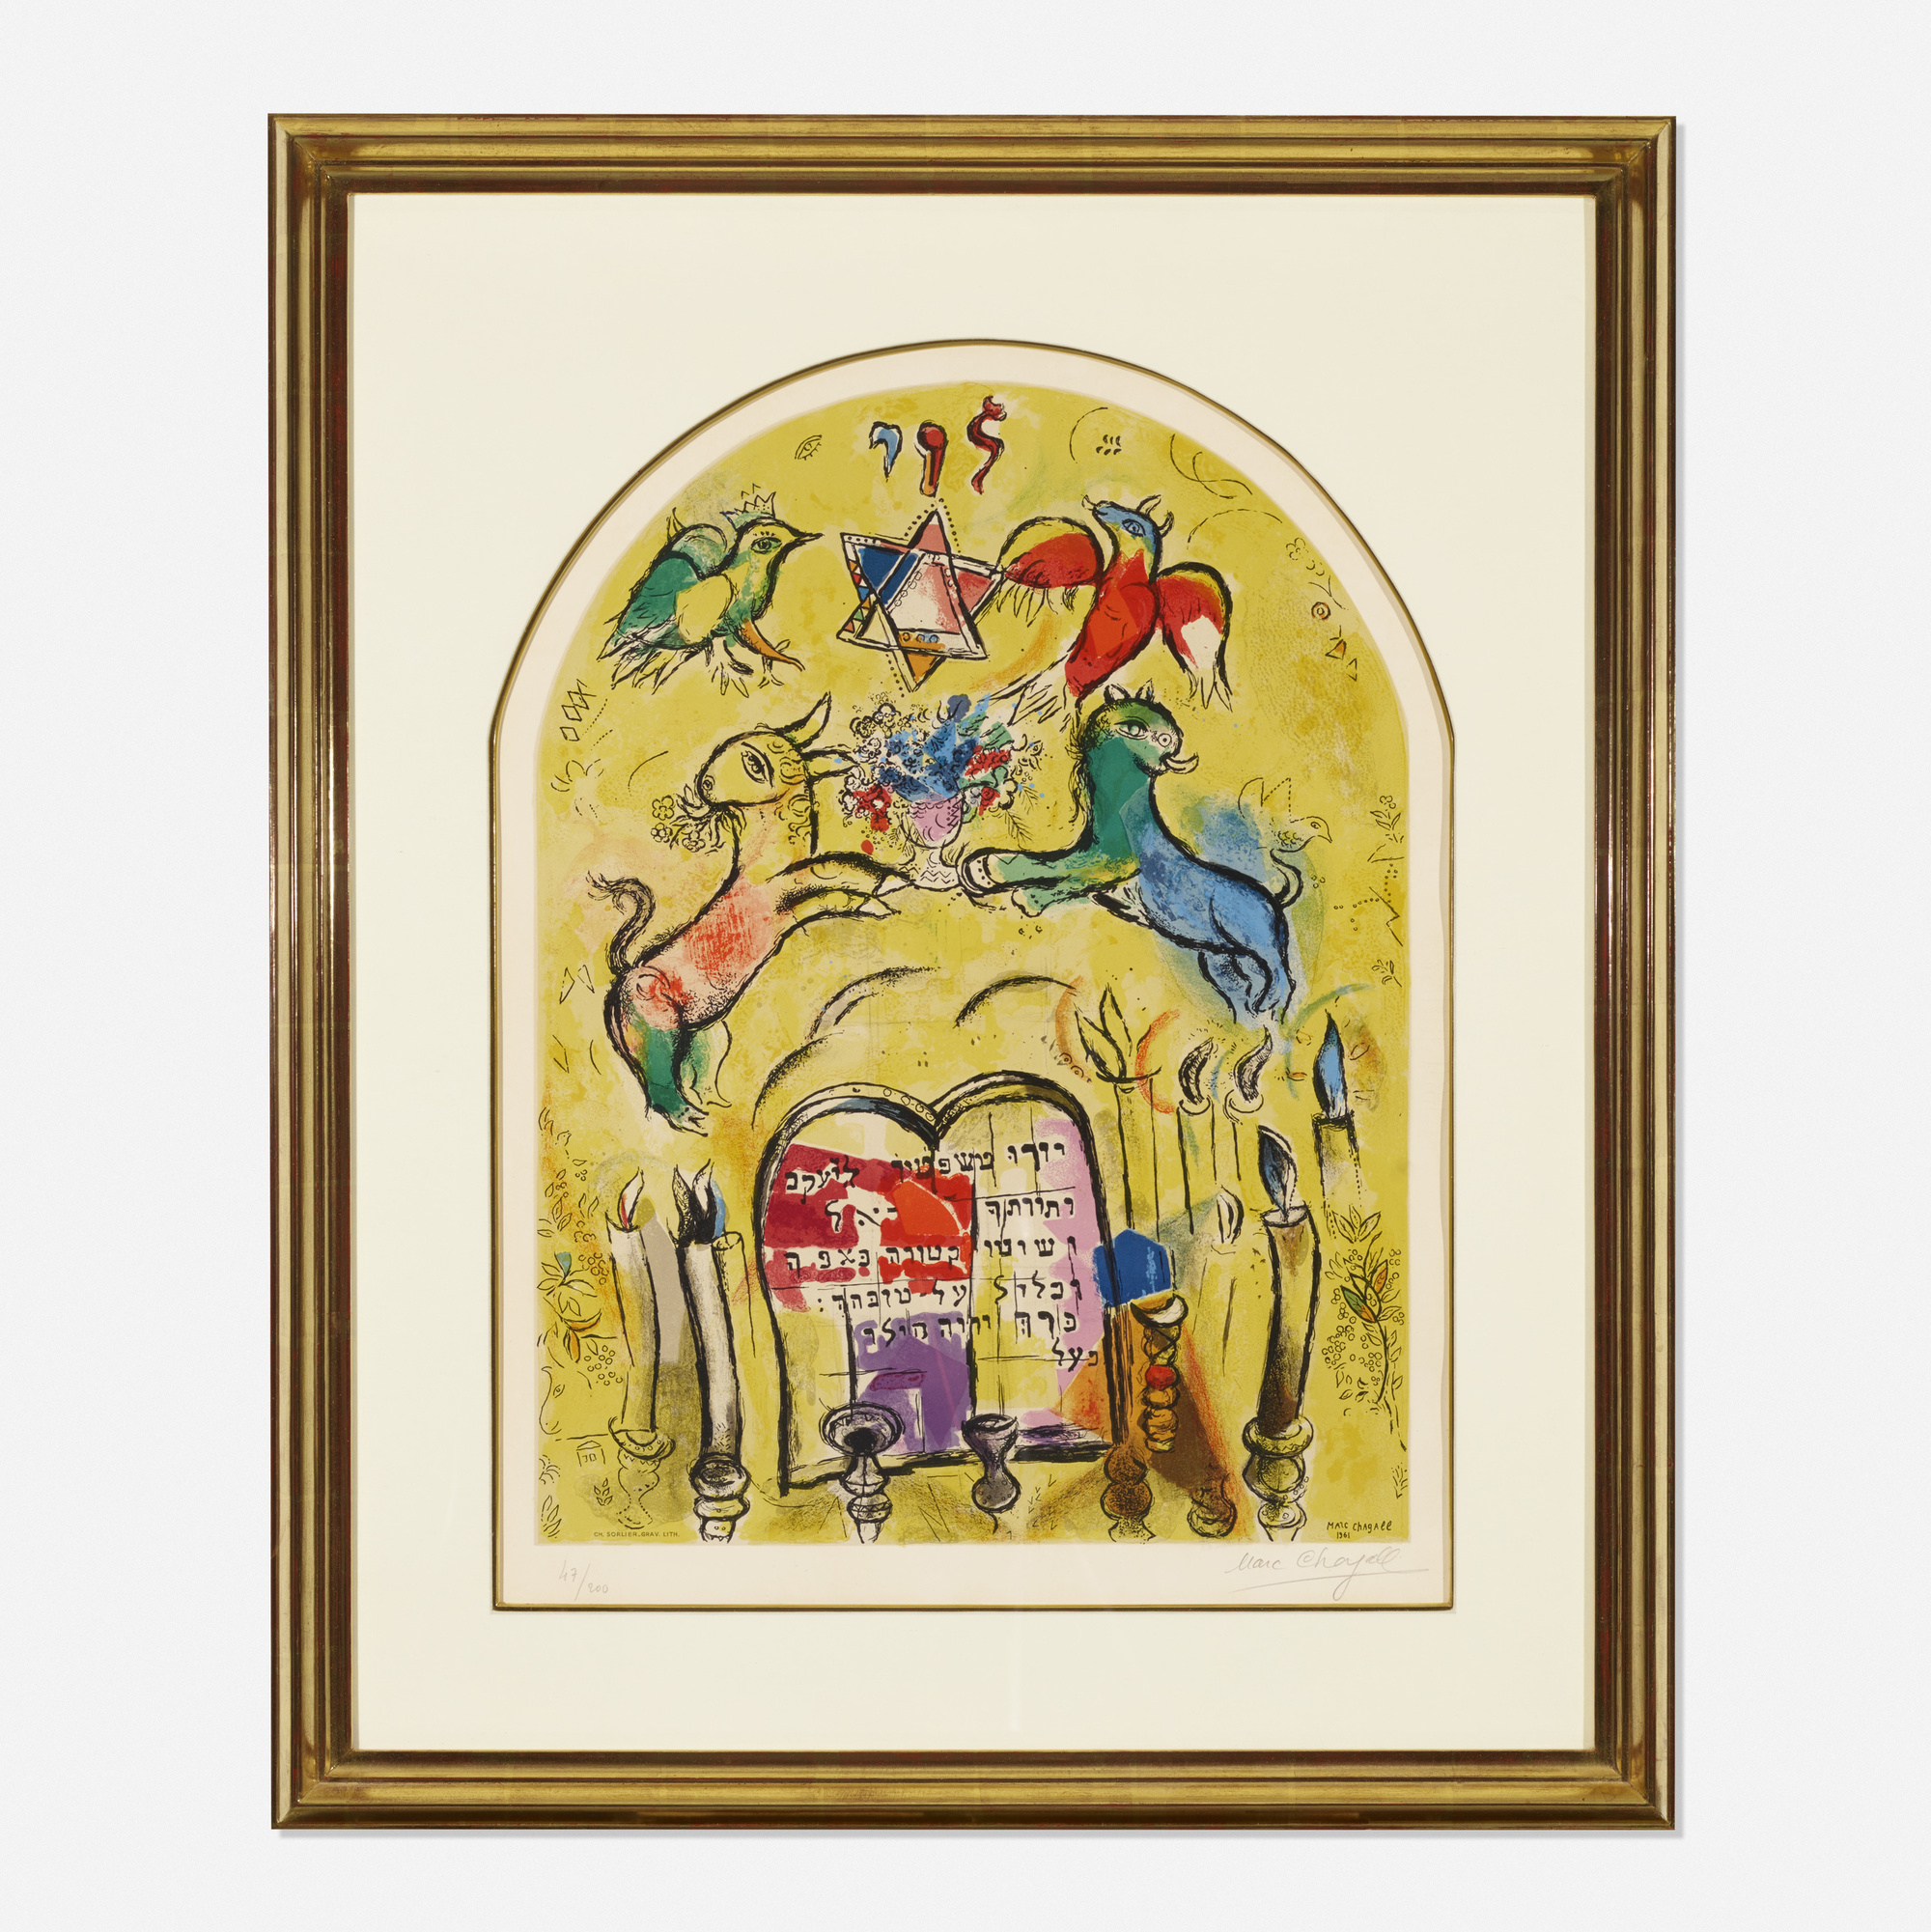 246: Charles Sorlier after Marc Chagall / Tribe of Levi (from Twelve Maquettes of Stained Glass Windows for Jerusalem) (1 of 2)